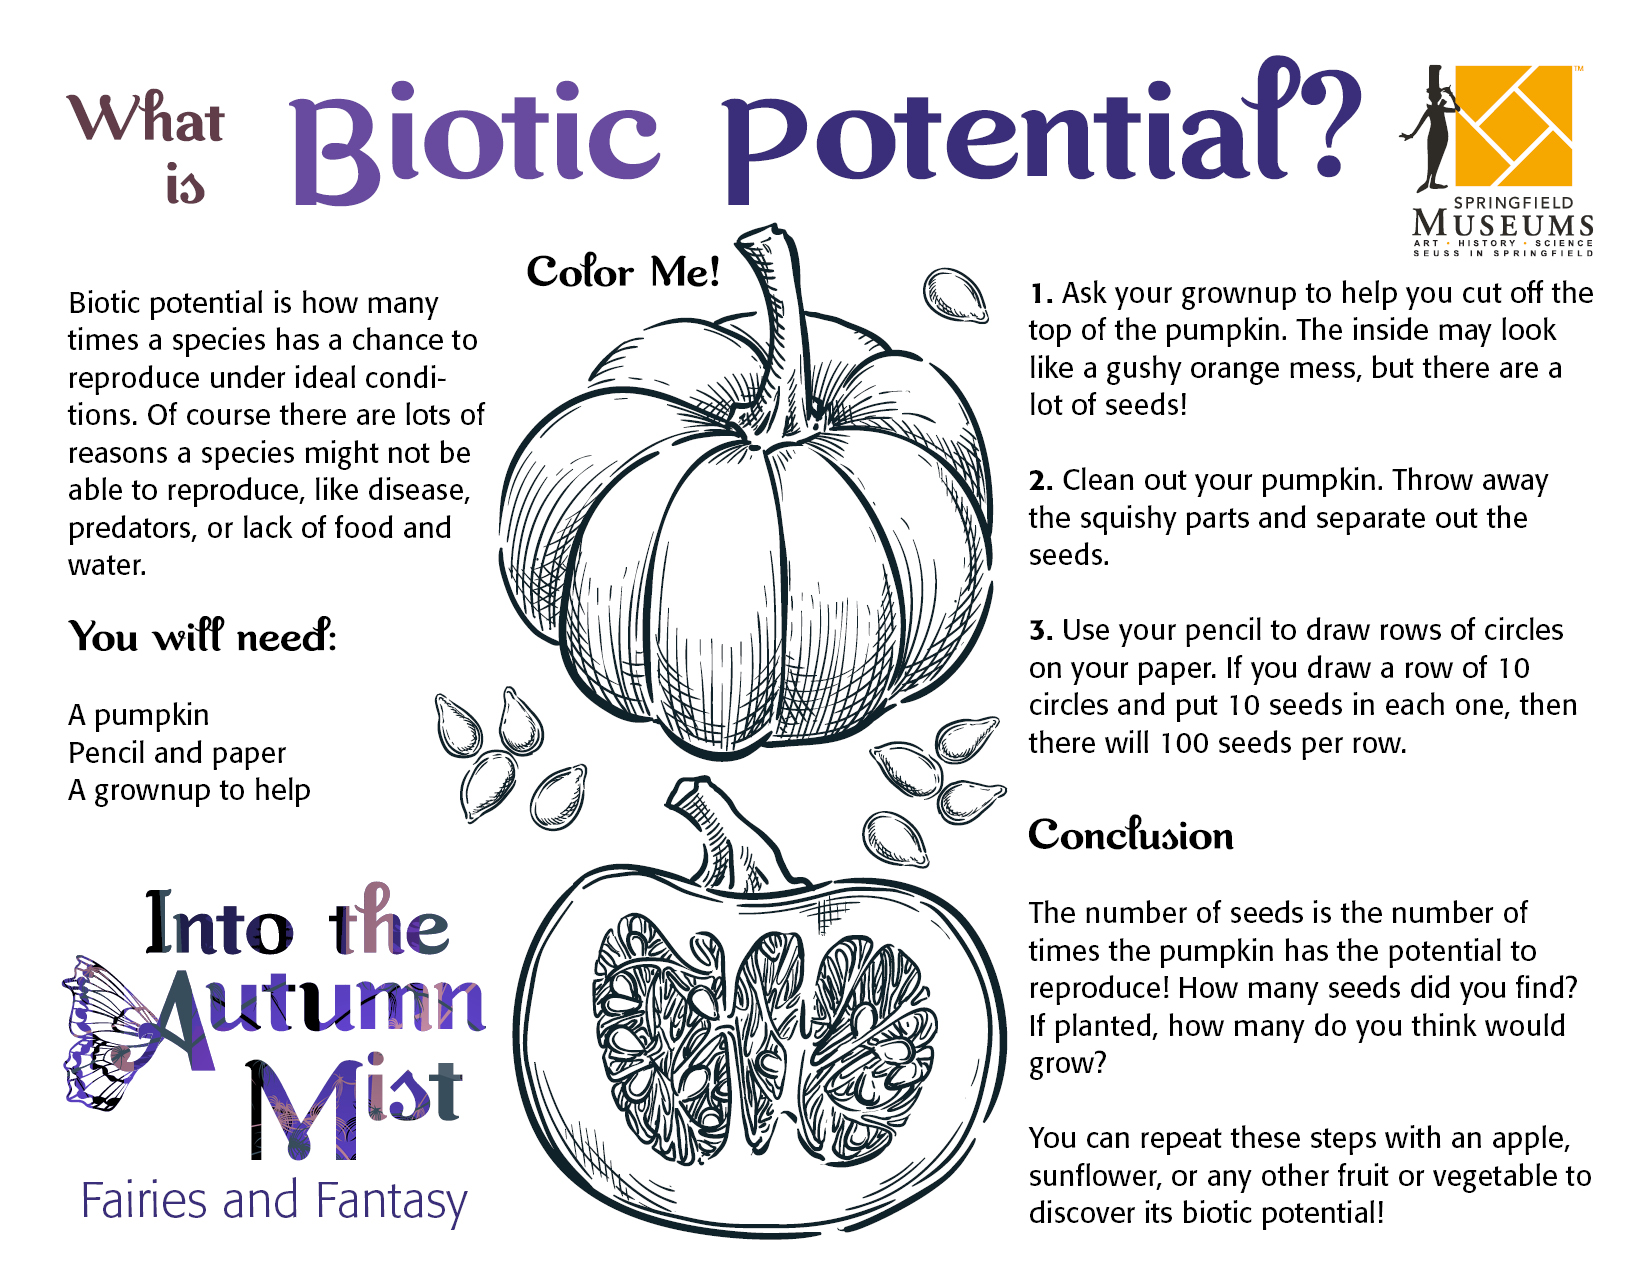 What is Biotic Potential?